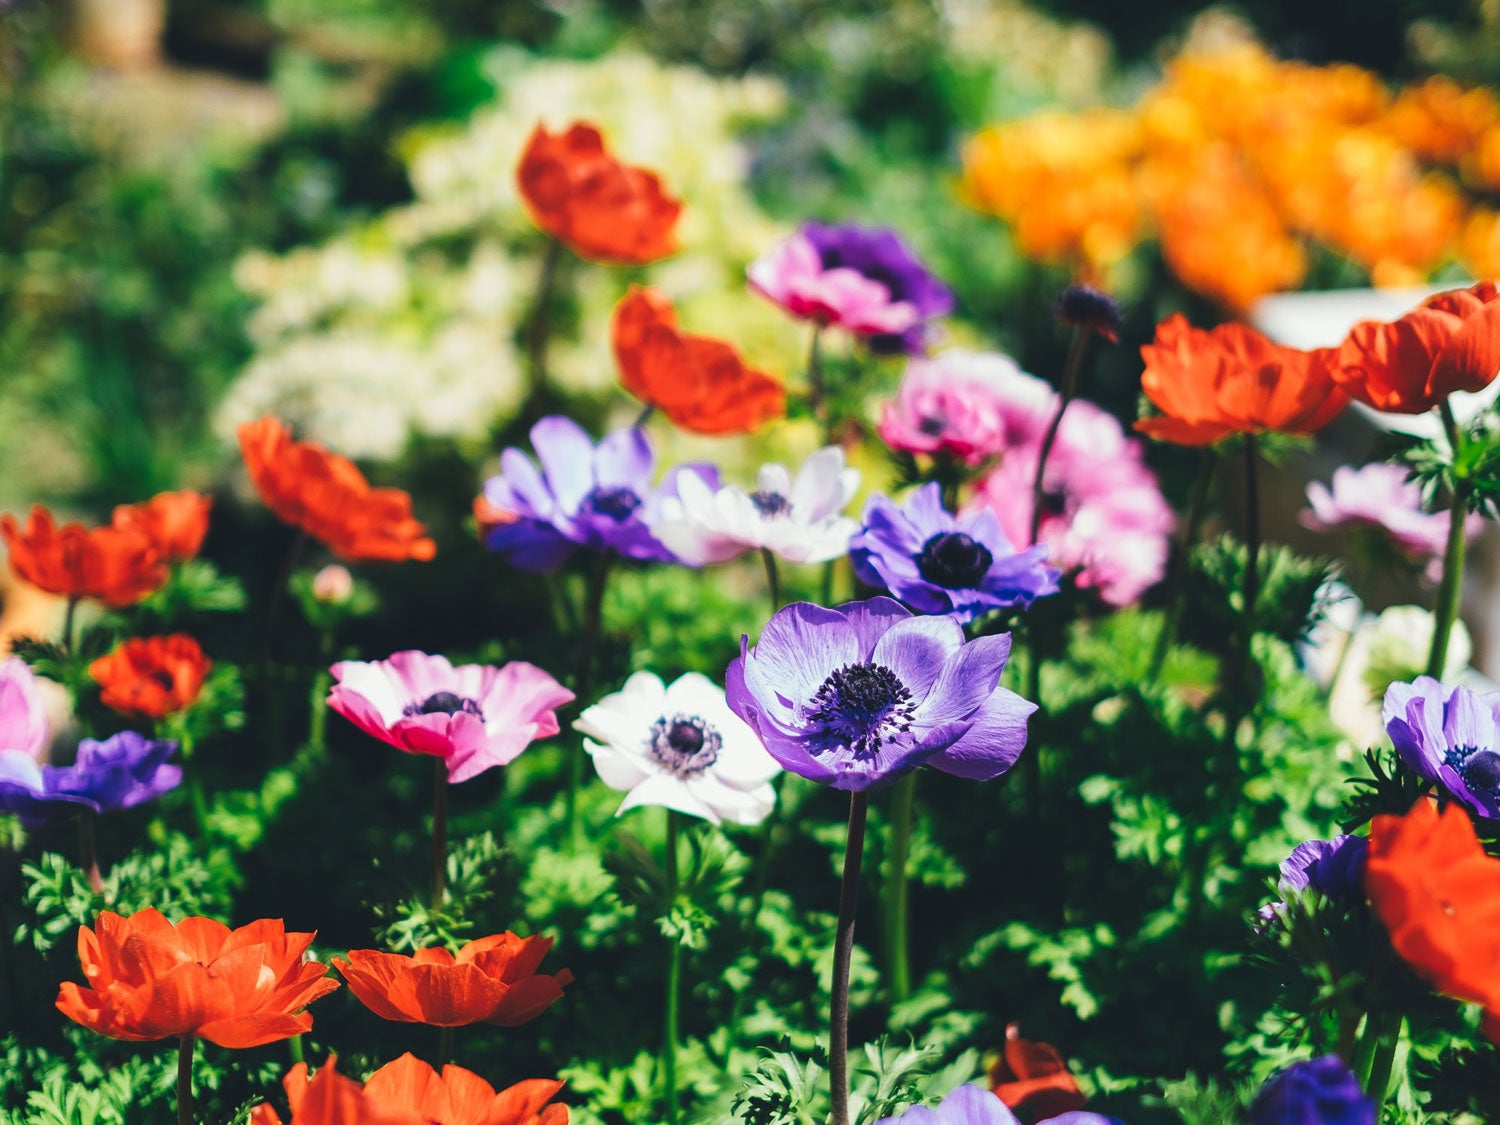 Garden of flowers maintained using herbicide sprayer.